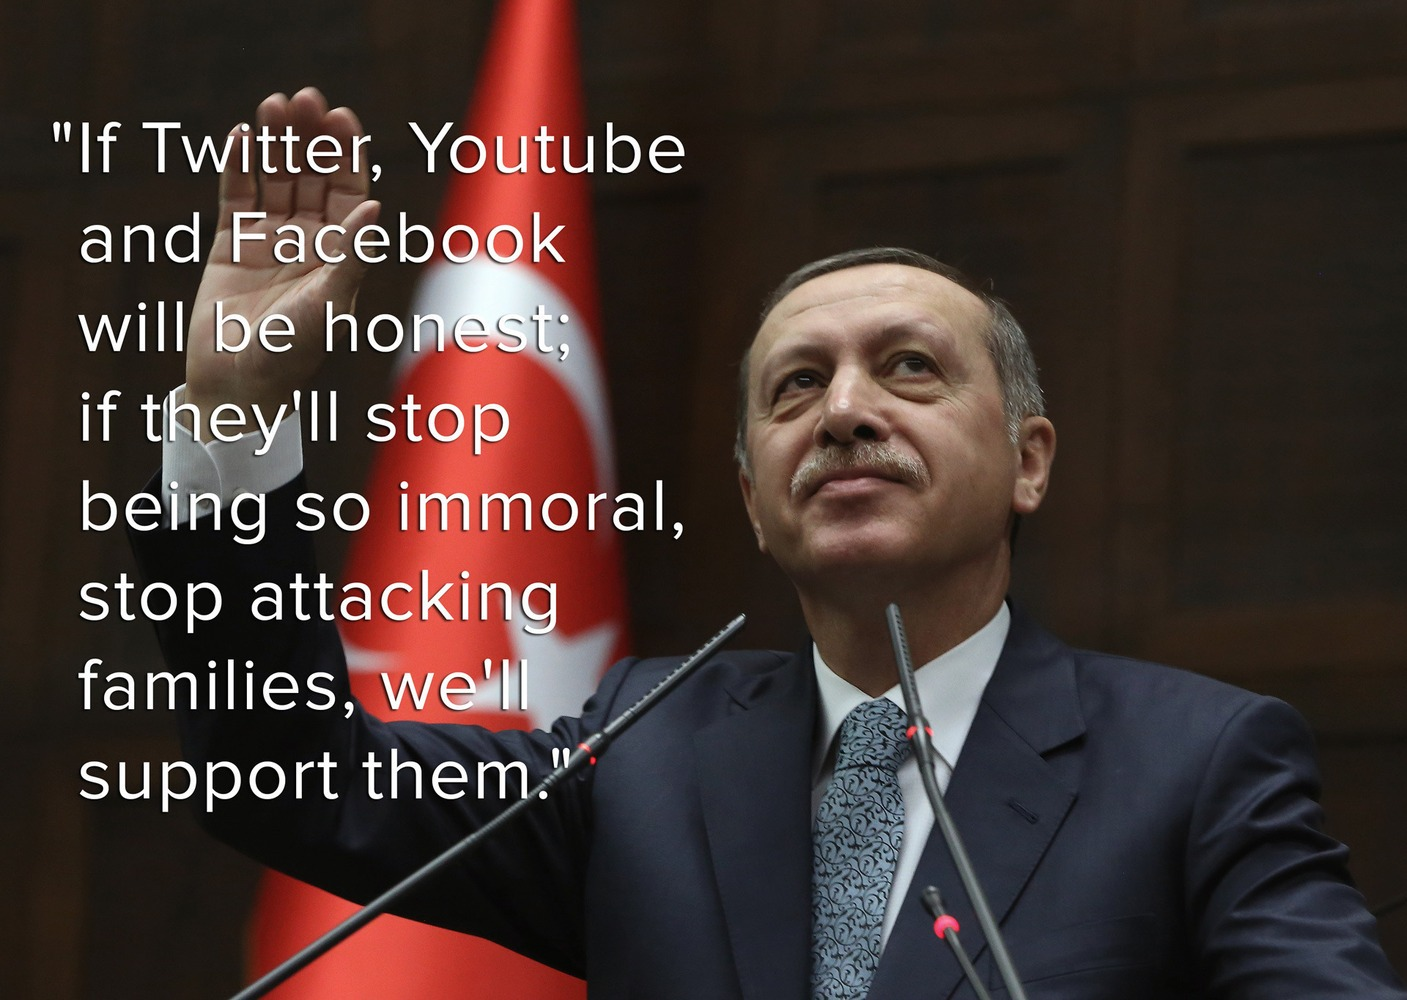 """If Twitter, Youtube & Facebook will be honest; if they'll stop being so immoral, stop attacking families, we'll support them,"" Erdoğan promised according to Zeynep Tufekci, who tweeted the remark March 23."